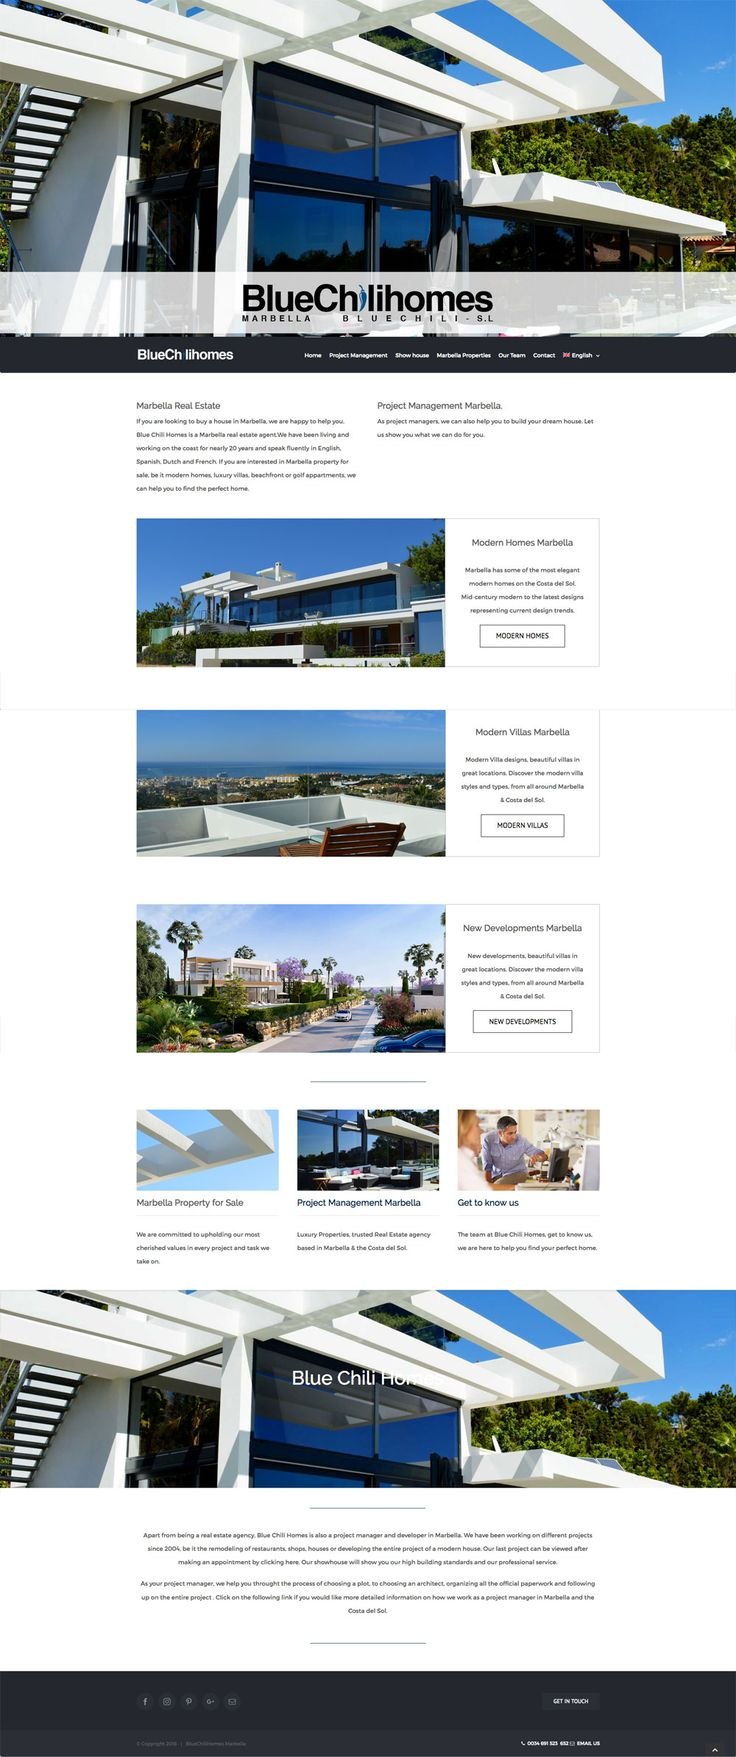 WordPress Real Estate Marbella, Property Listing website with WordPress. Custom web design layouts, Blue style themed throughout, WordPress Real Estate system to handle properties from the costa del sol. The wordpress site is fully responsive on android, tablets and all devices for ease of visitors use..